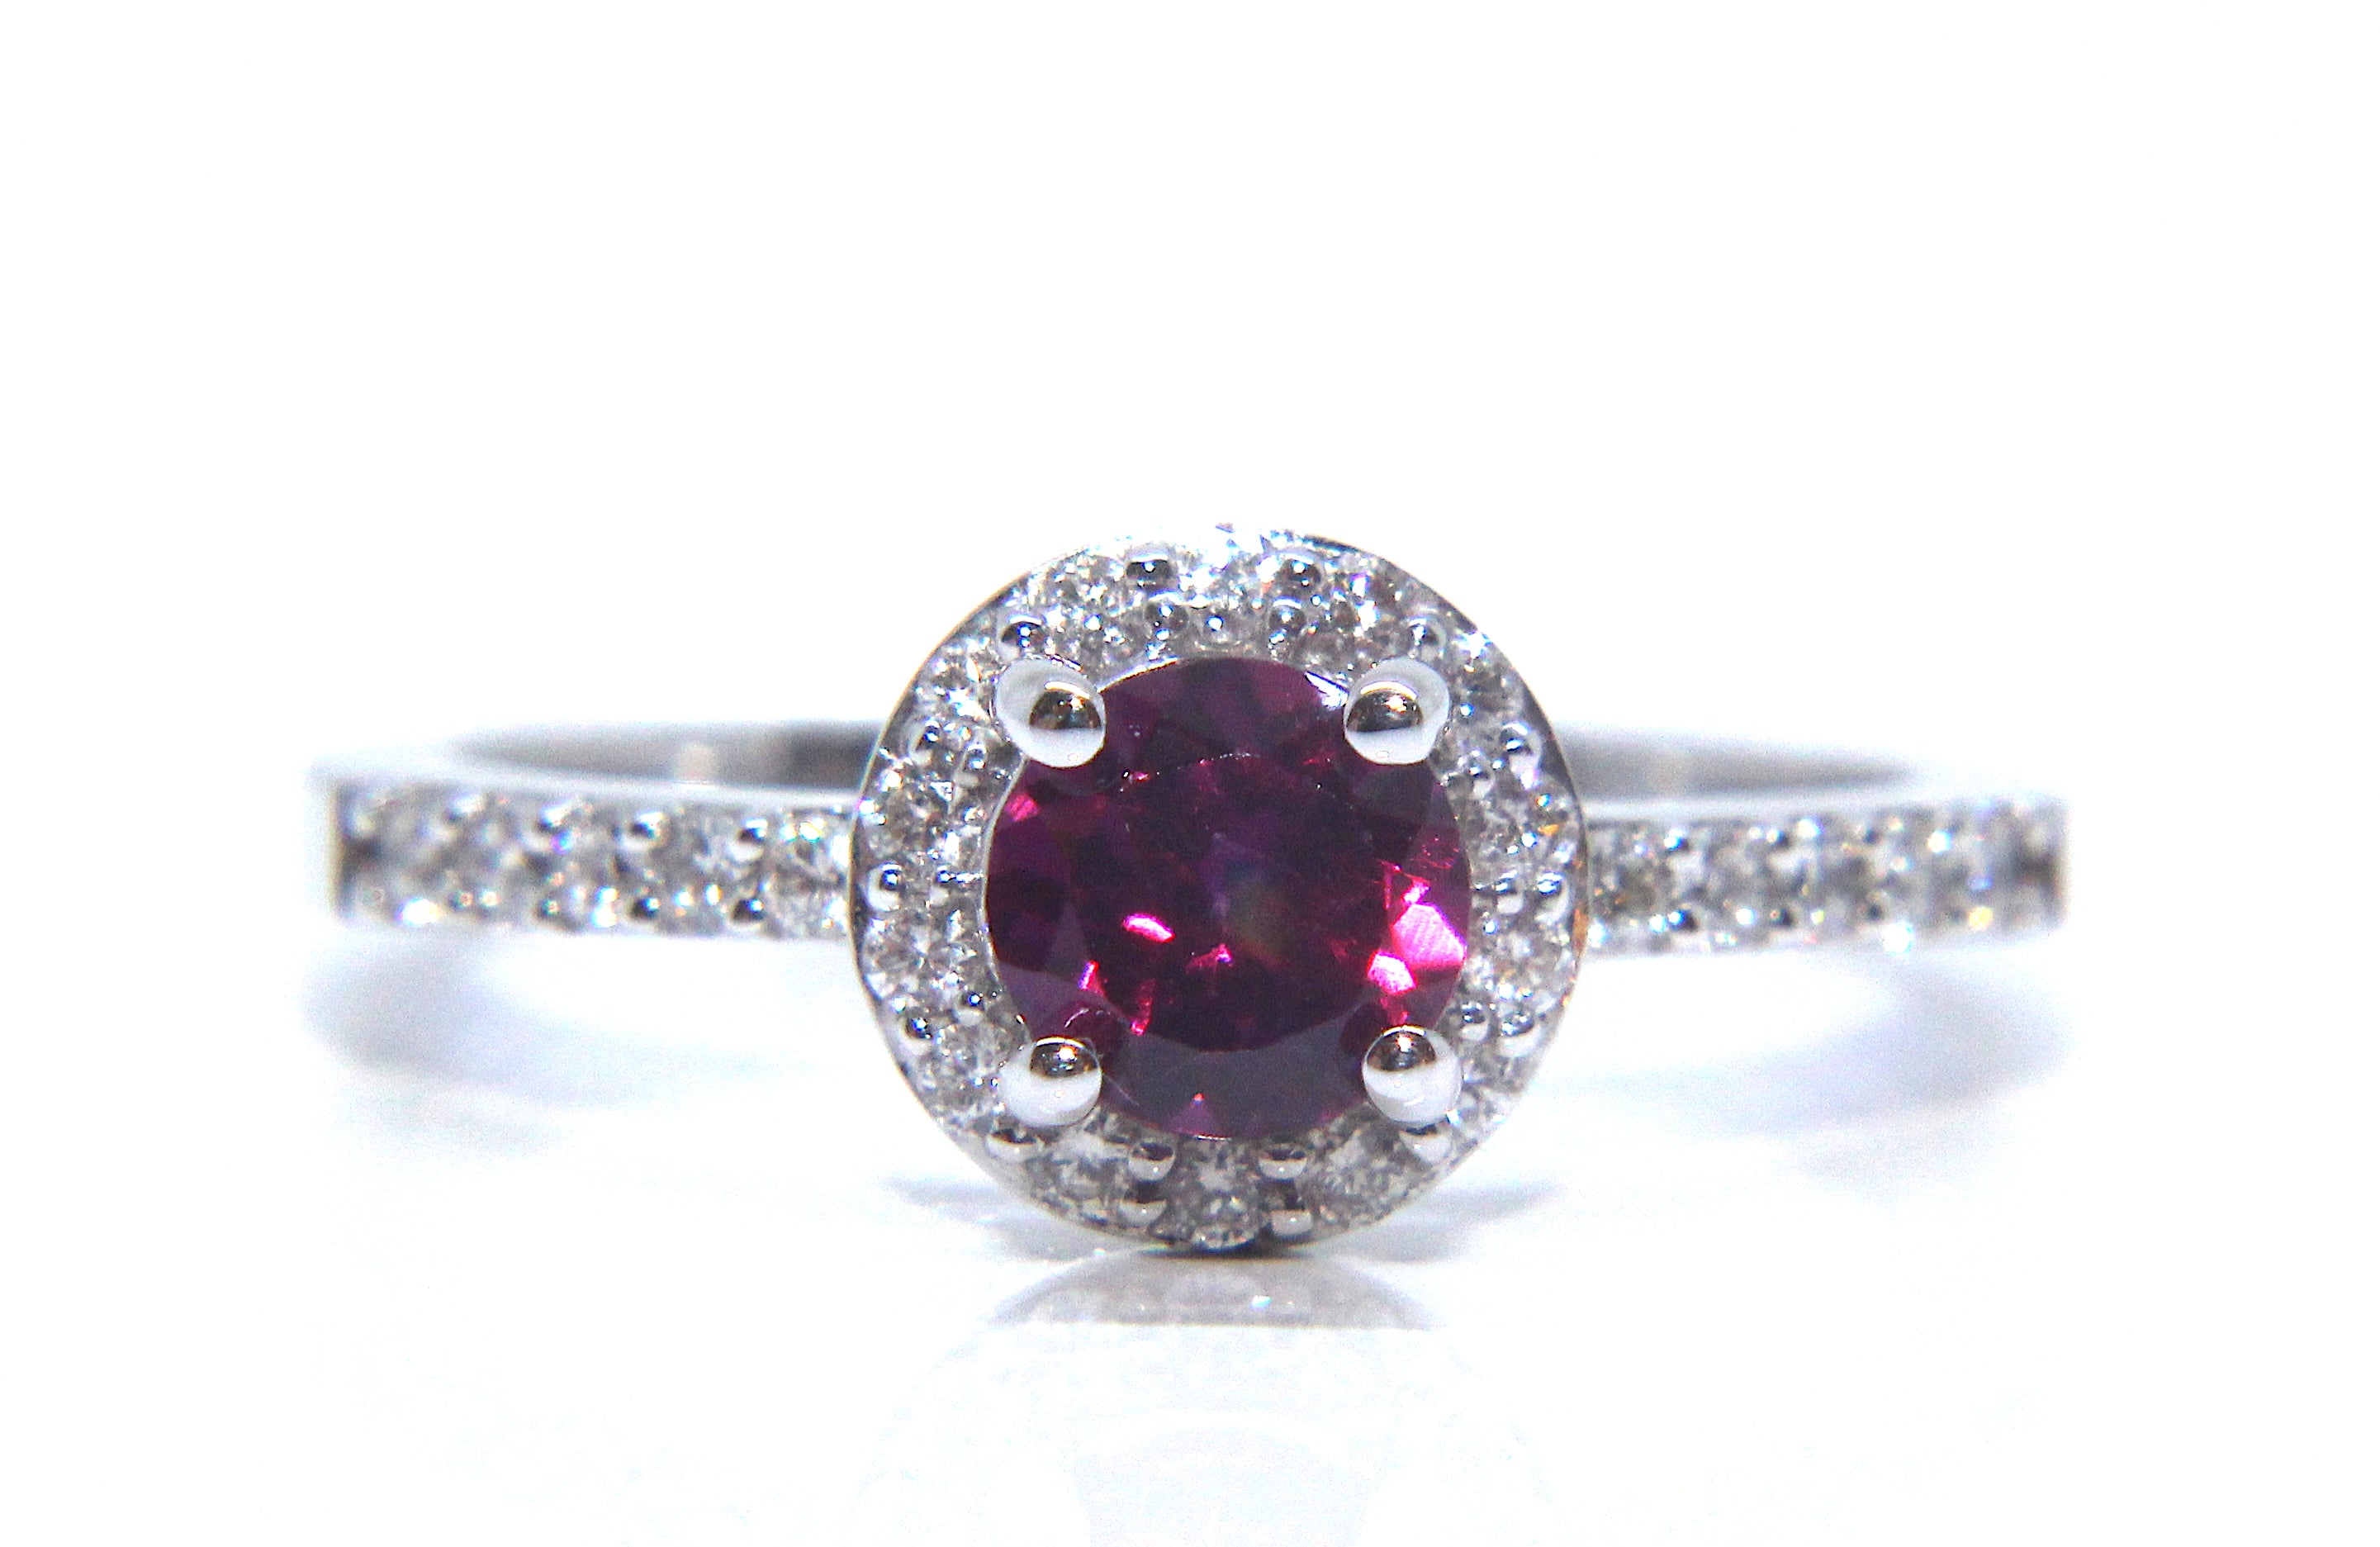 com dusty gold rhodolite diamond by uk yellow jewellery rings ring annoushka engagement wishlist kind amethyst for fine garnet side diamonds shop women